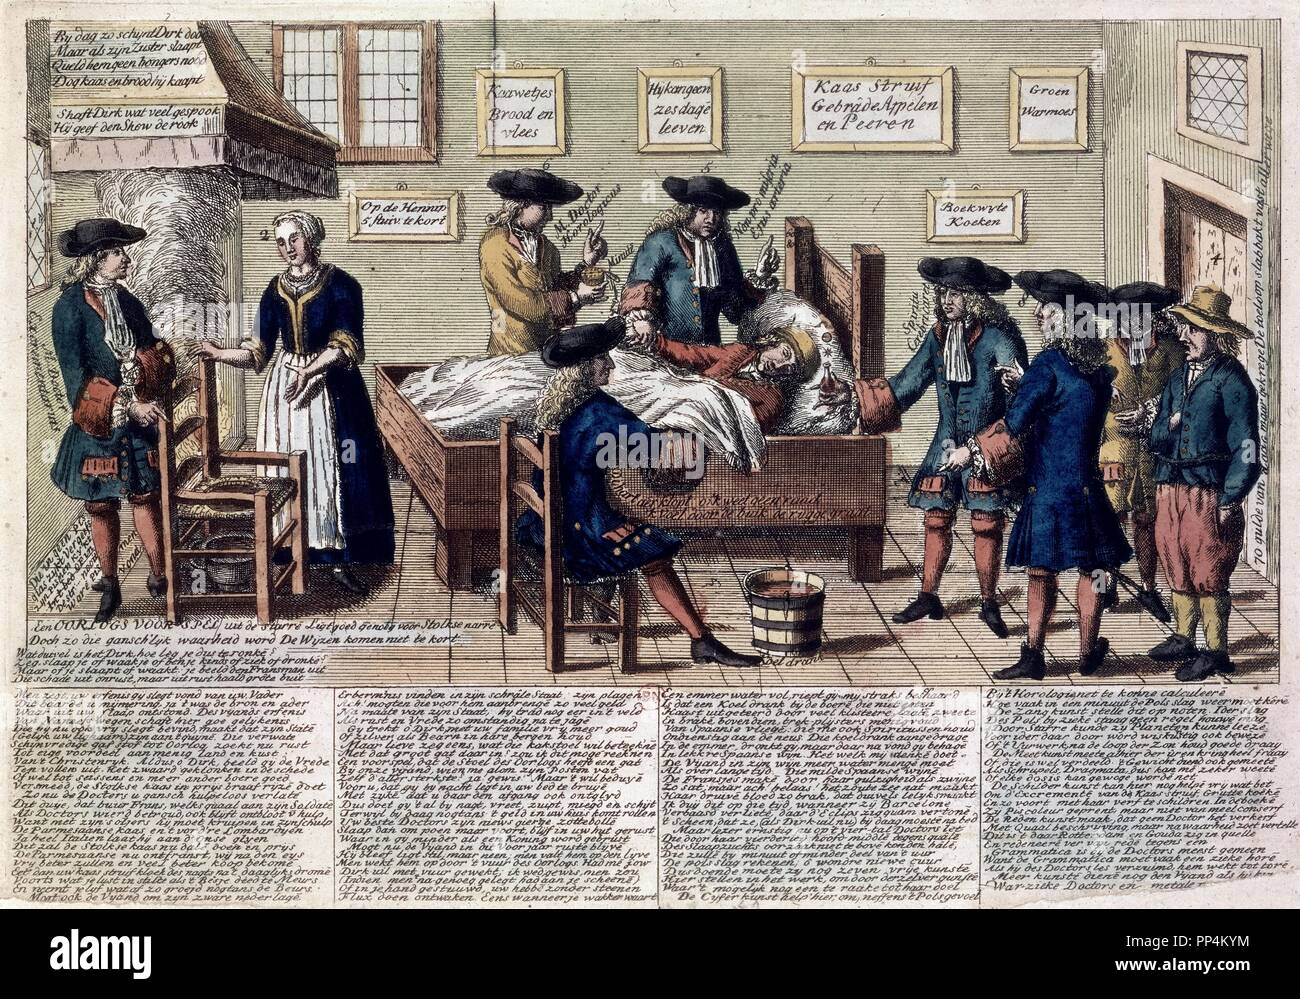 ENGRAVING-DOCTOR VISITS A SICK PERSON. Location: NATIONAL LIBRARY. France. - Stock Image